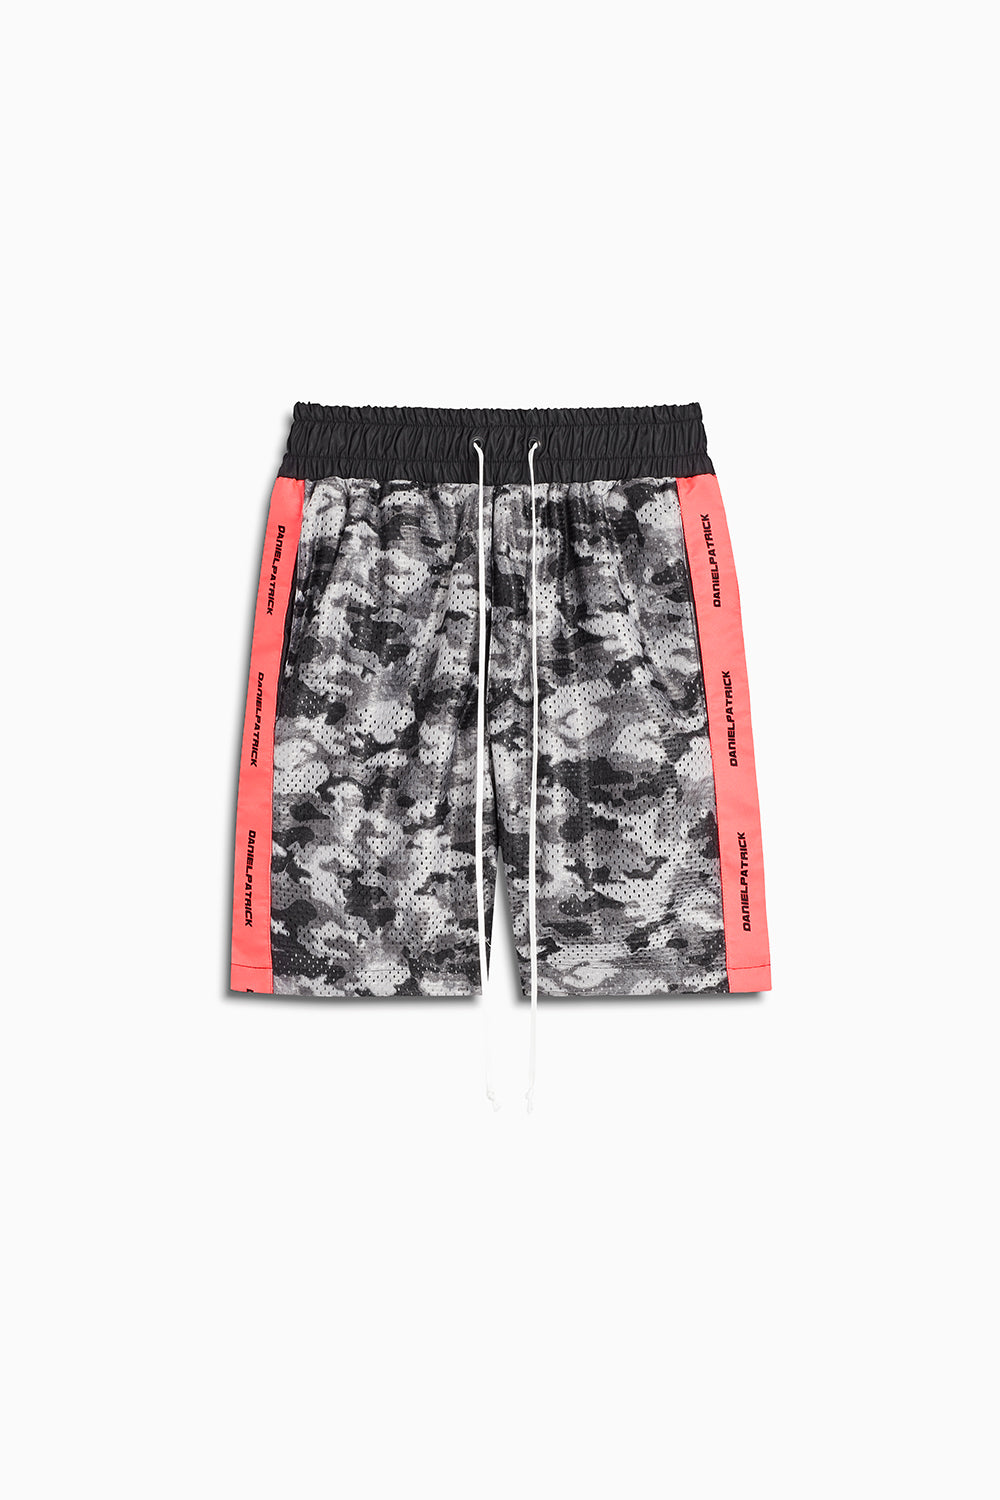 mesh gym short in grey scale camo/neon pink by daniel patrick